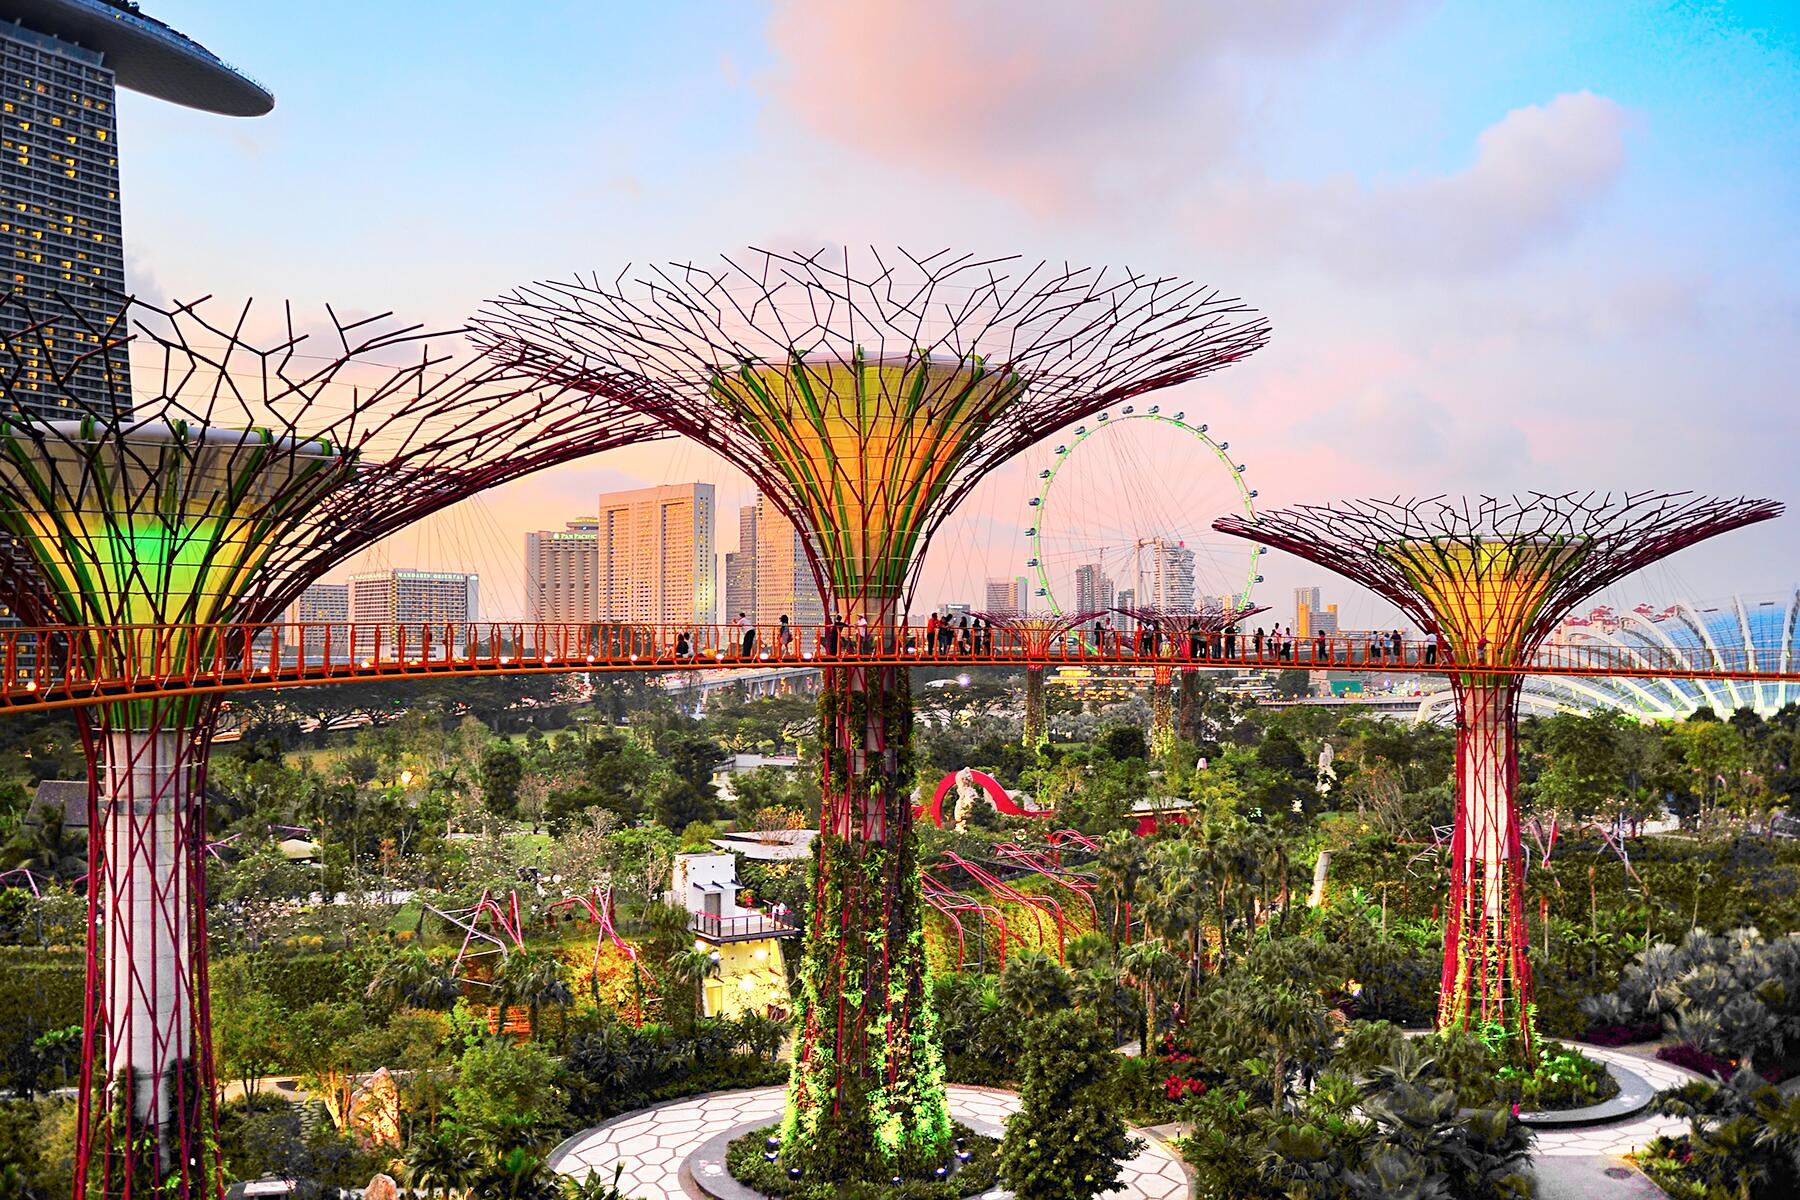 10 of the World's Most Unique Urban Parks